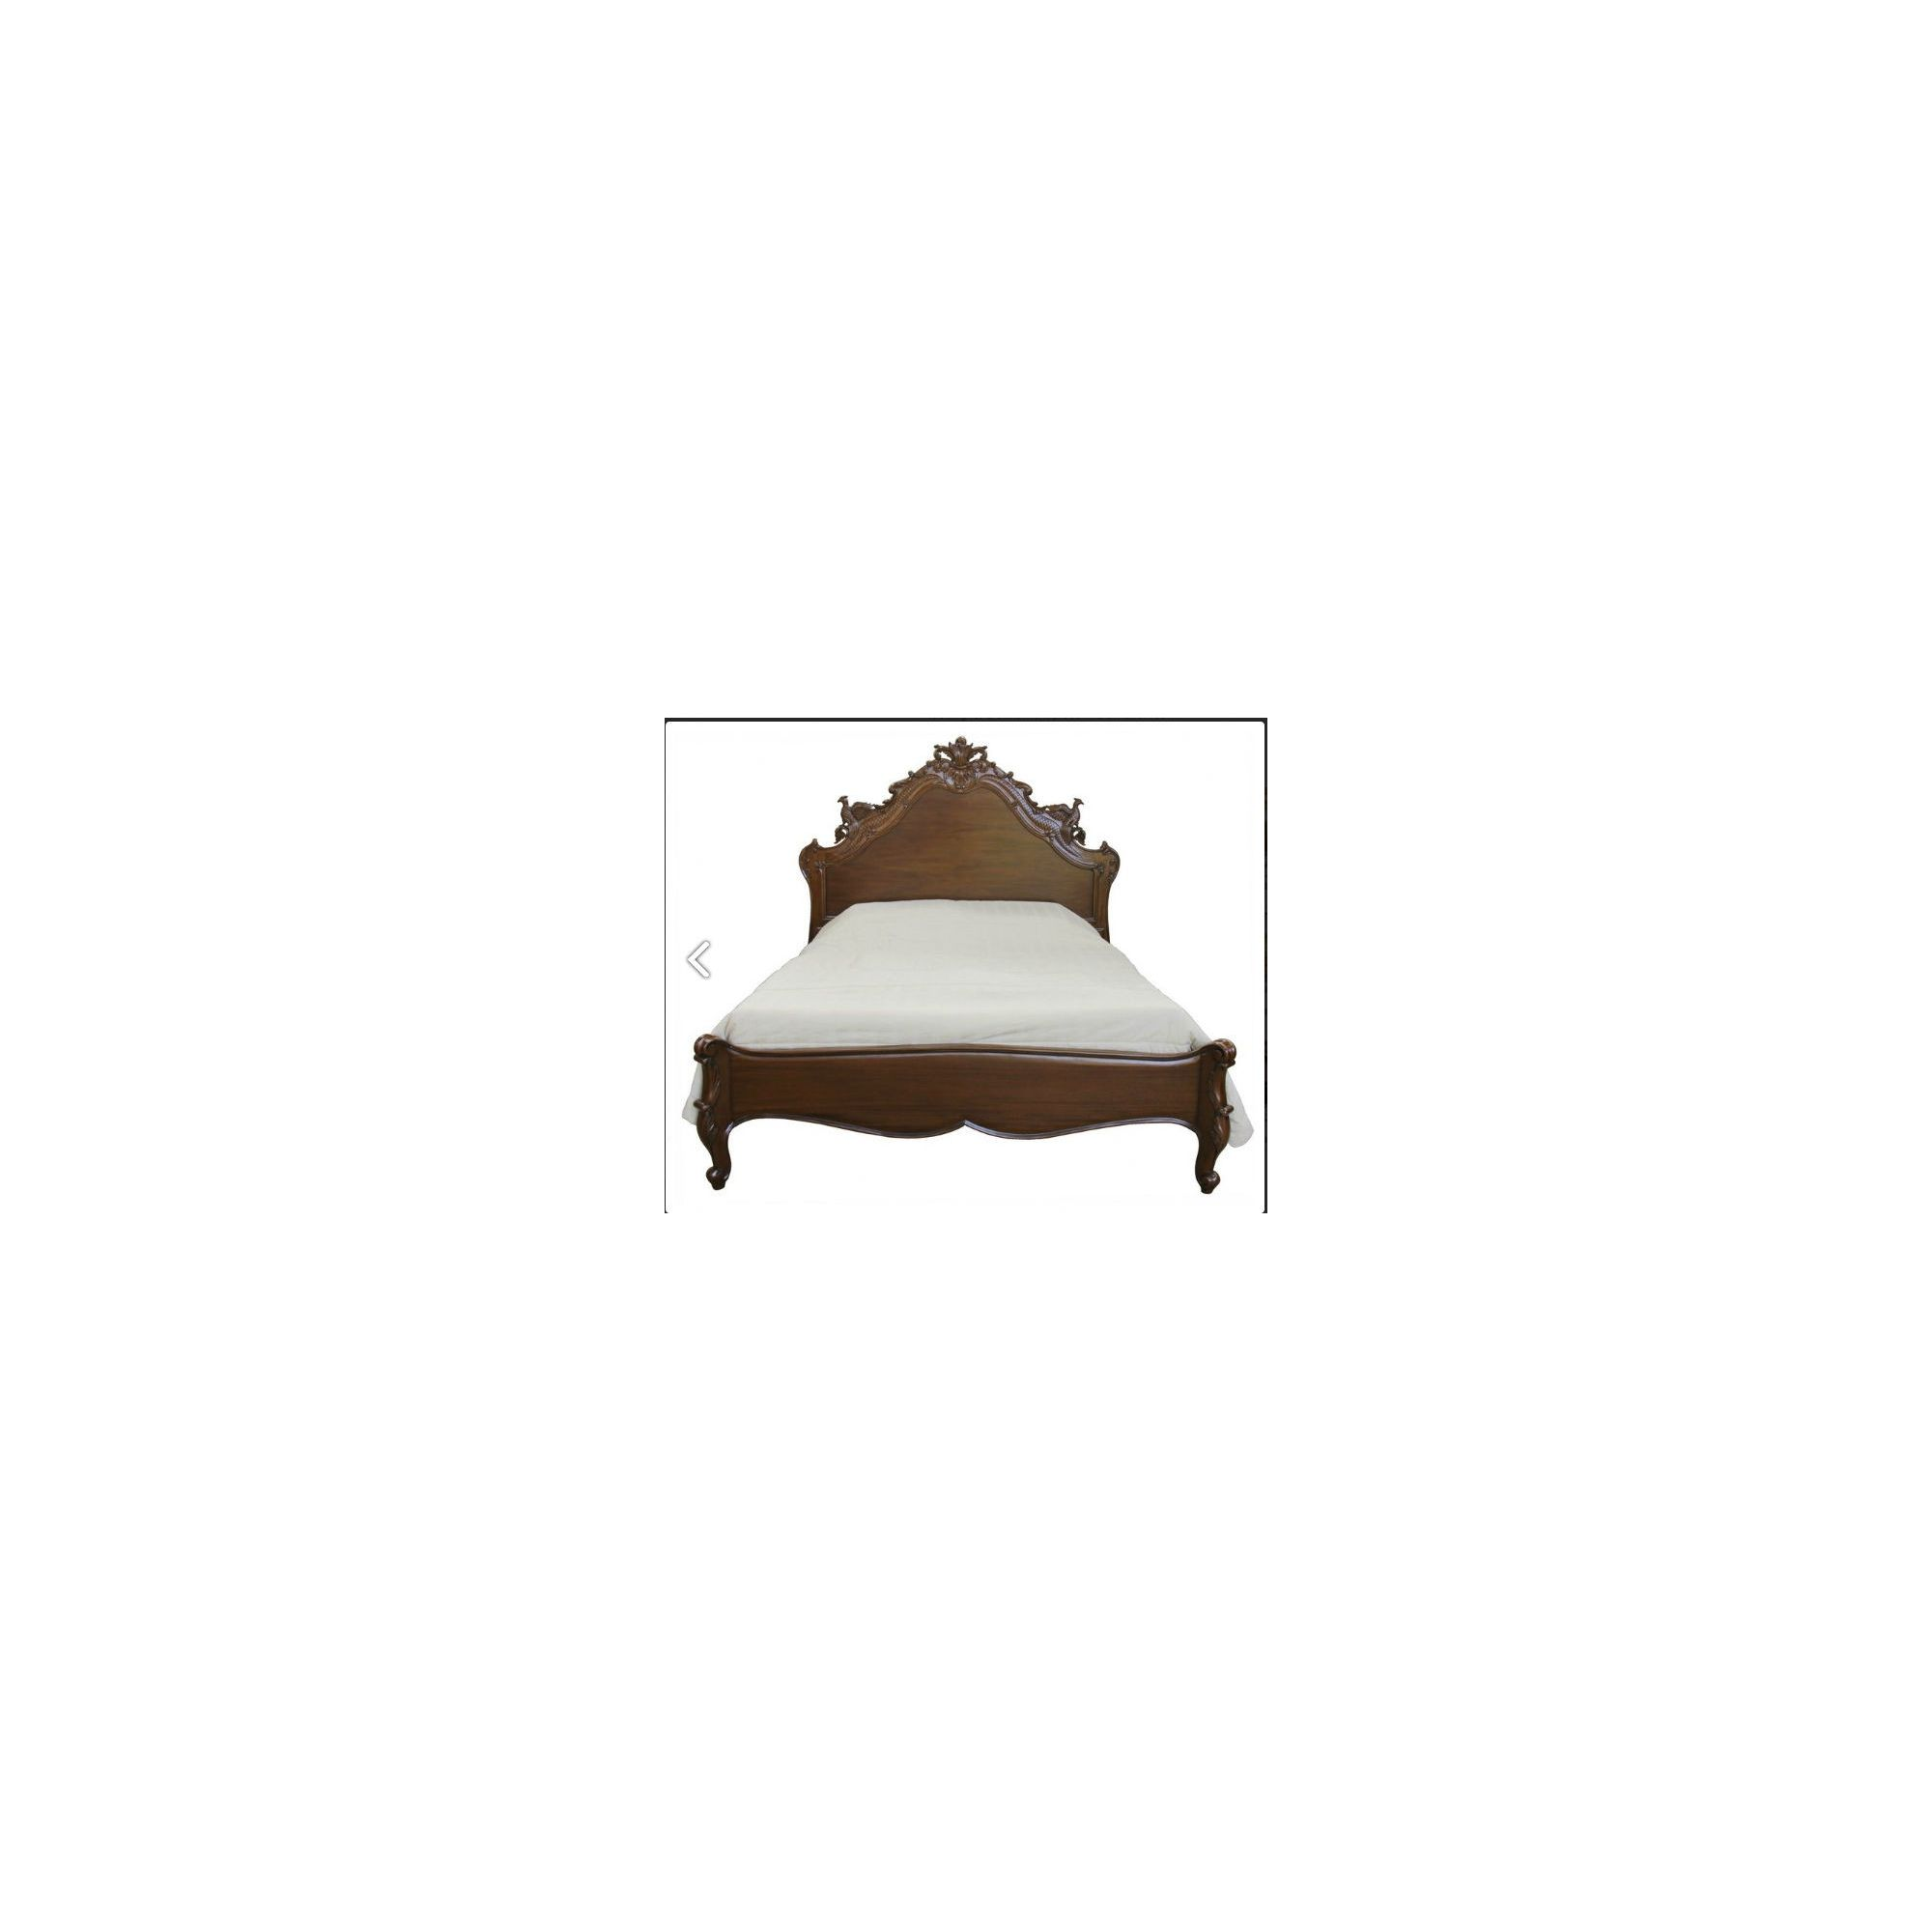 Lock stock and barrel Mahogany Versailles Carved Bird Bed in Mahogany - Antique White - Double at Tesco Direct